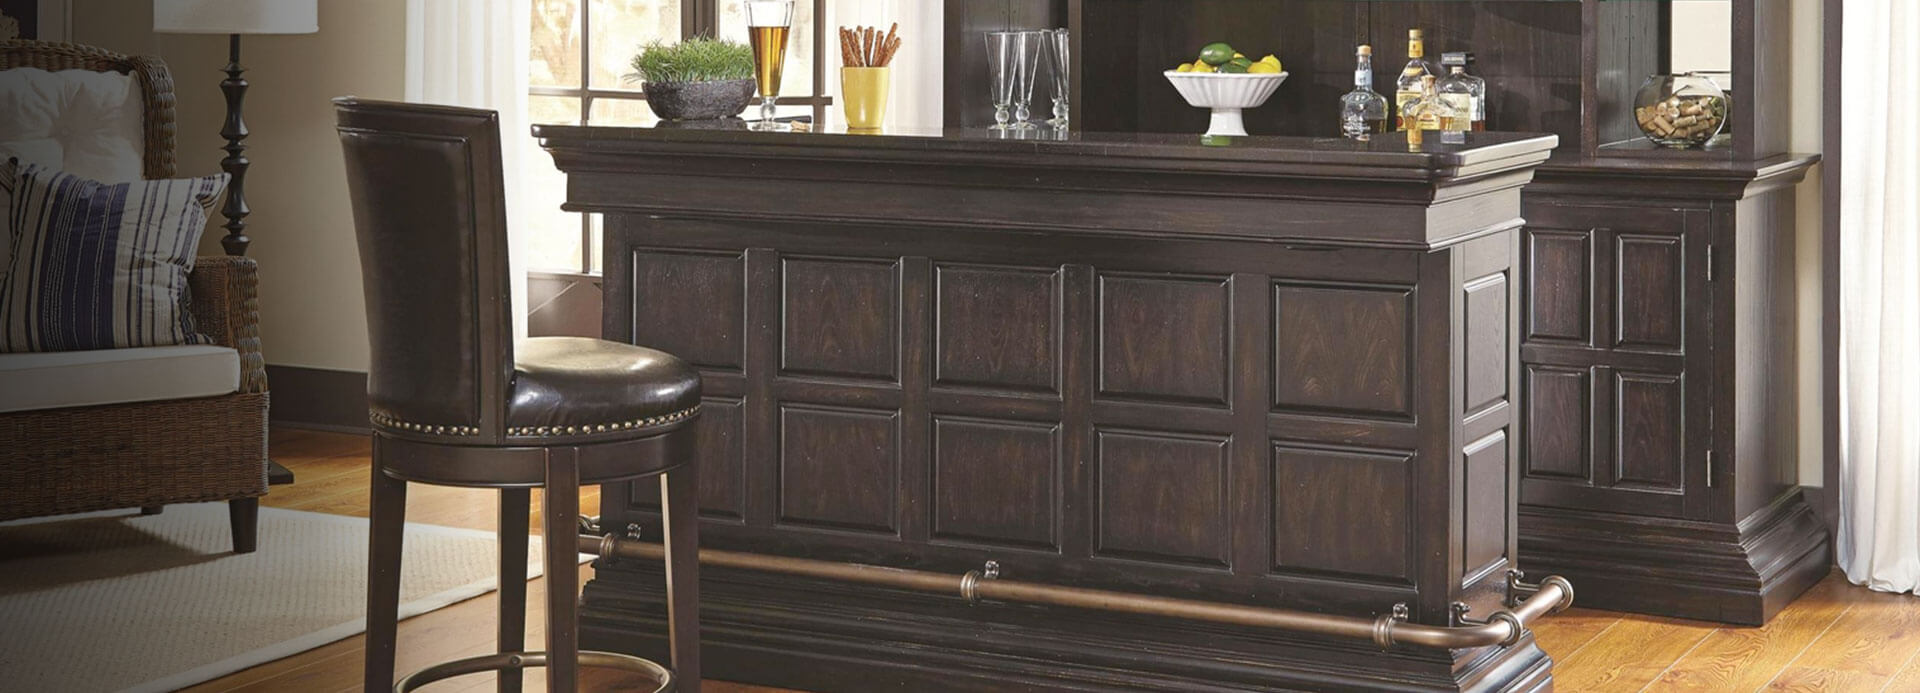 savings bar furniture designs